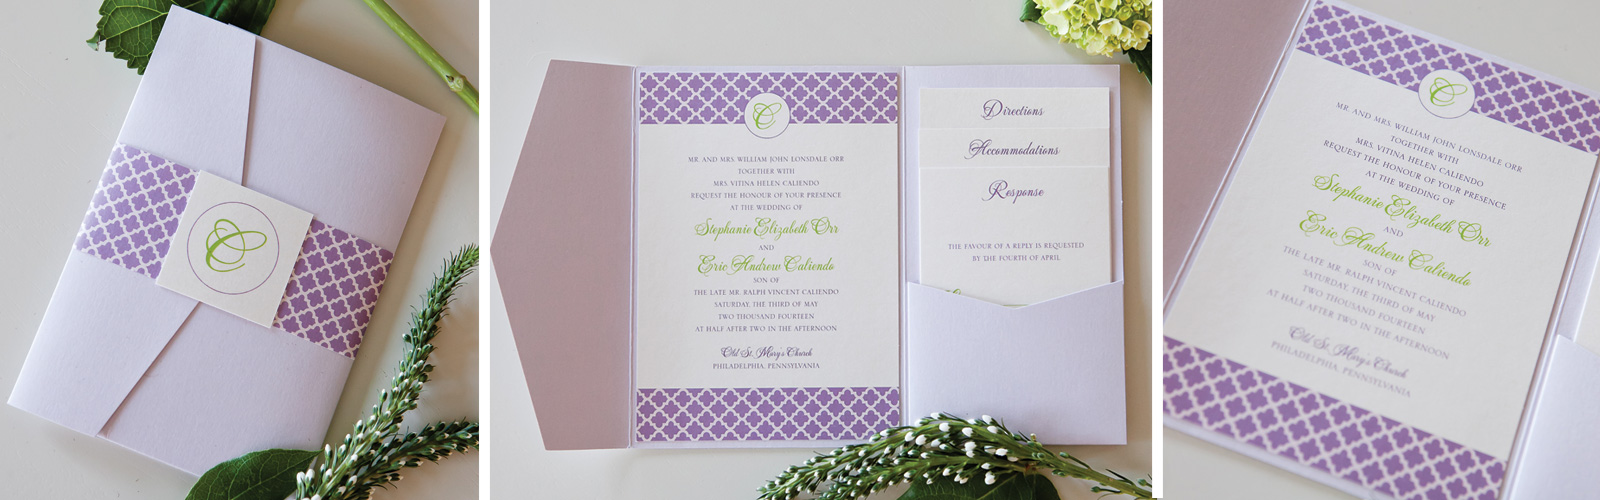 Purple Green Lattice Wedding Invitation Hotel Monaco Philadelphia